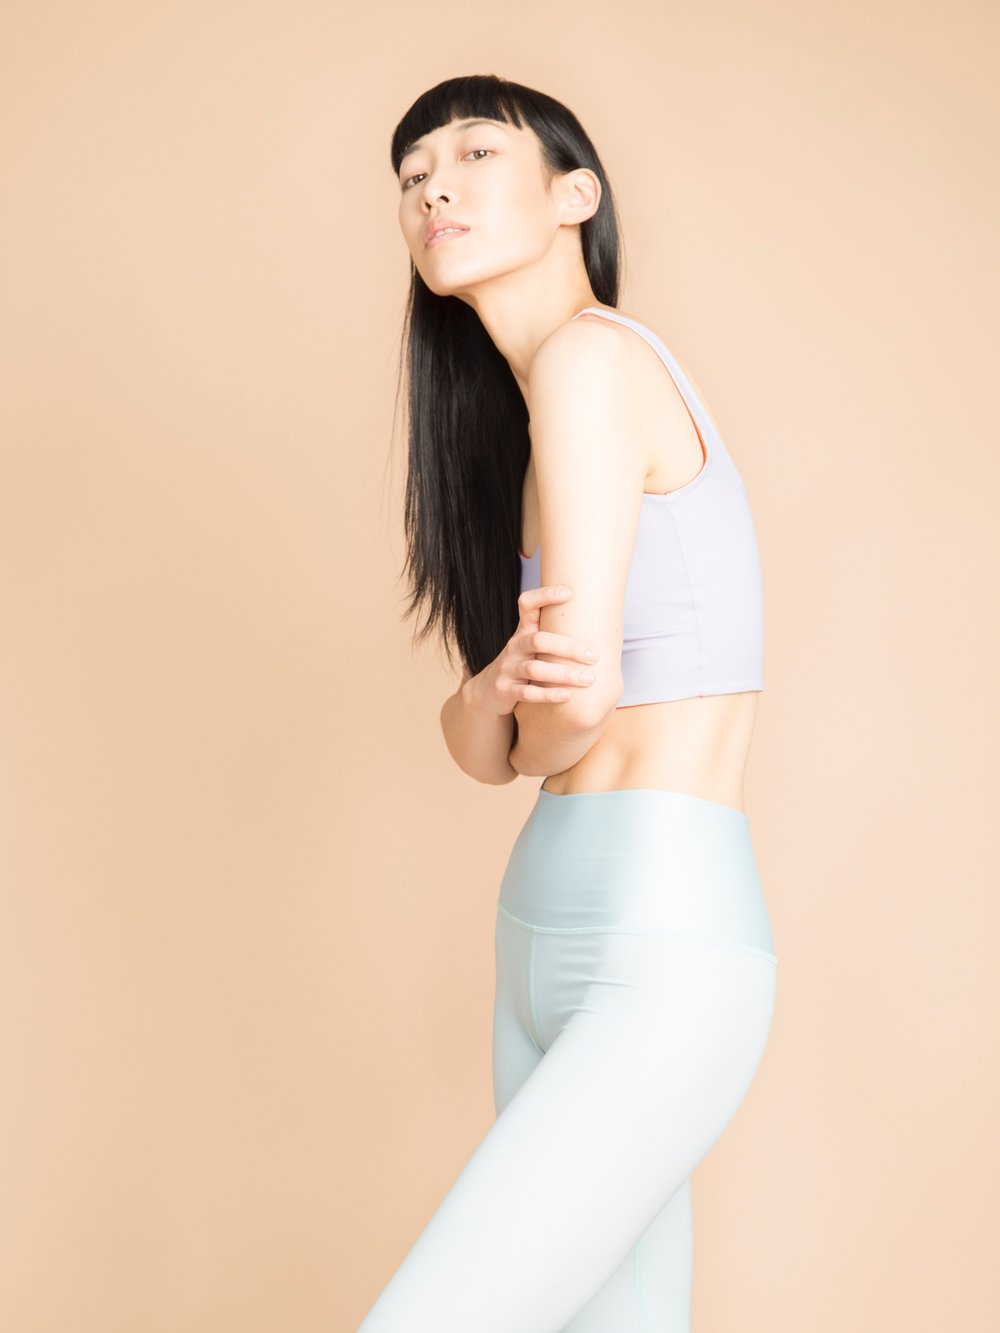 April_Staso_Photography_LosAngeles_Fashion_photographer_LA_Photographer_Yoga_apparel+Angeles_Fashion_design_LA_womens_fashion_Photographer+Angeles_Photographer_LA_Fashion_Photography_Irenes_Story+%282+of+8%29.jpg